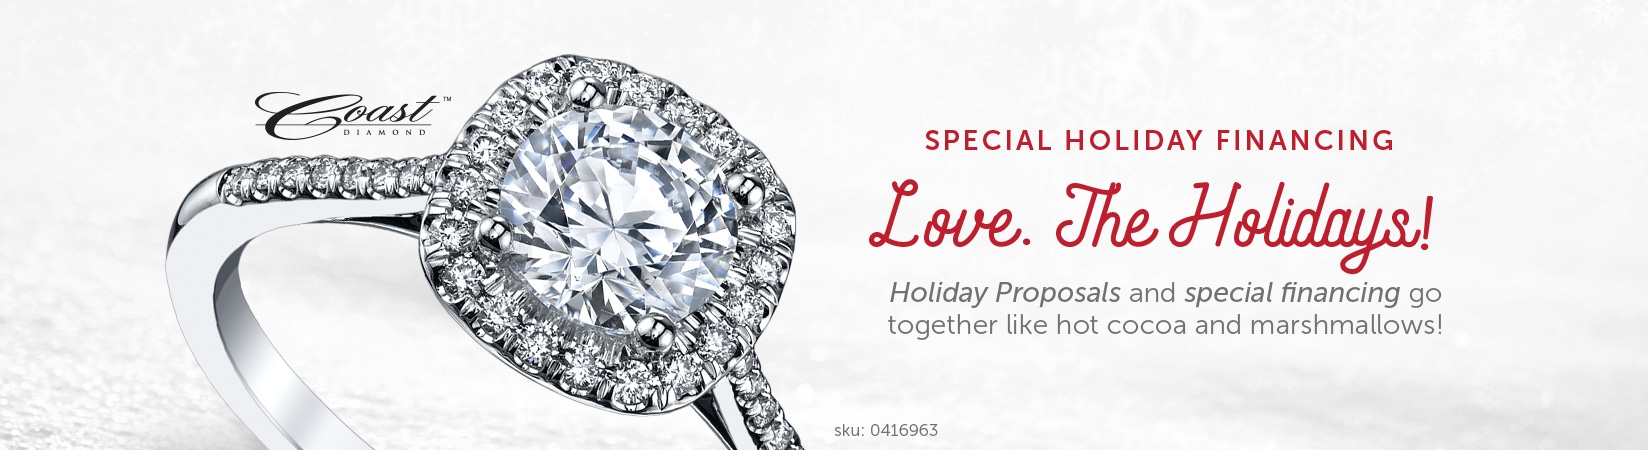 Special Holiday Financing